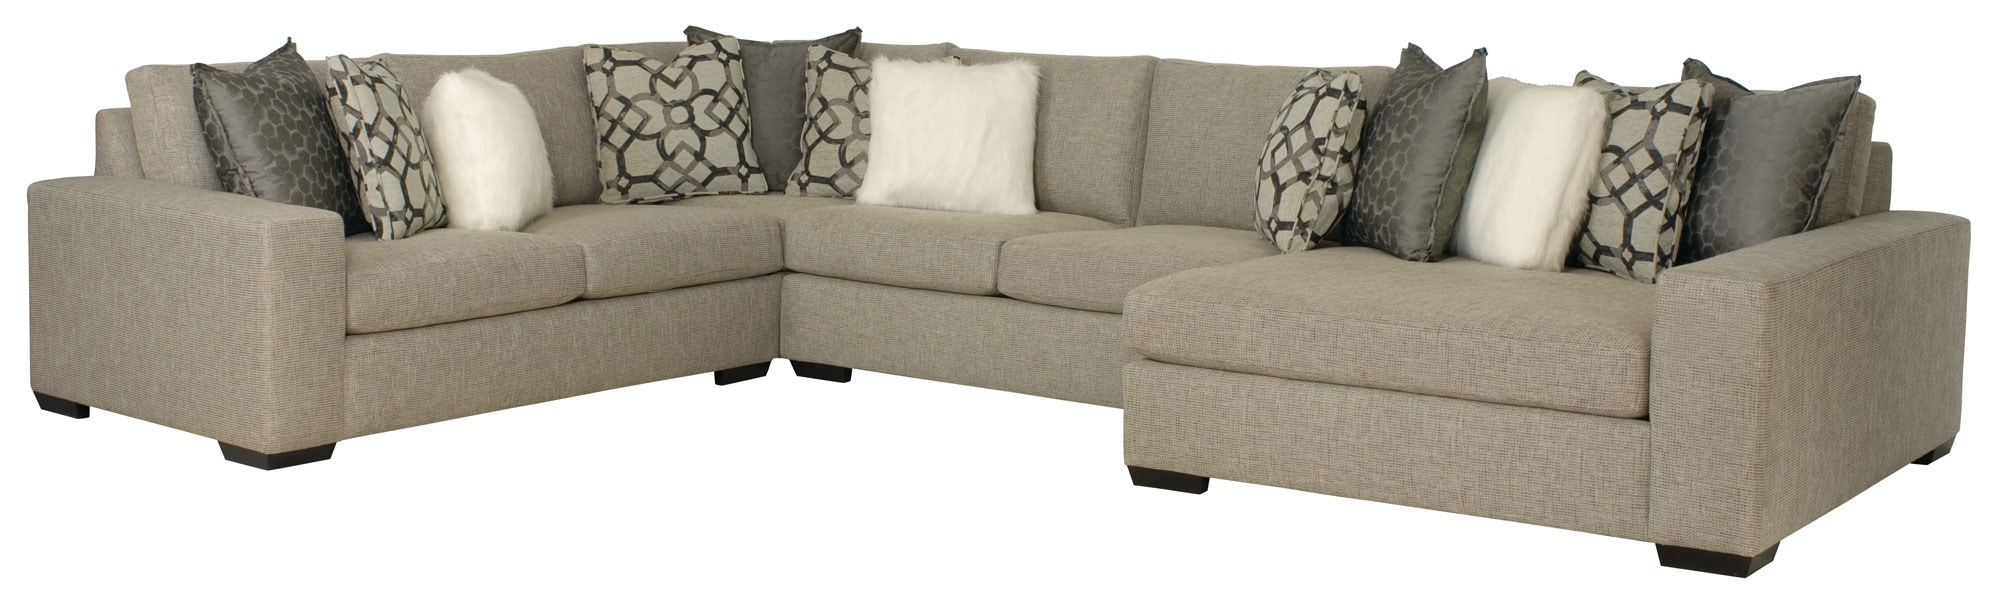 Bernhardt Furniture B6542, B6532, B6540, B6537. Orlando Sectional